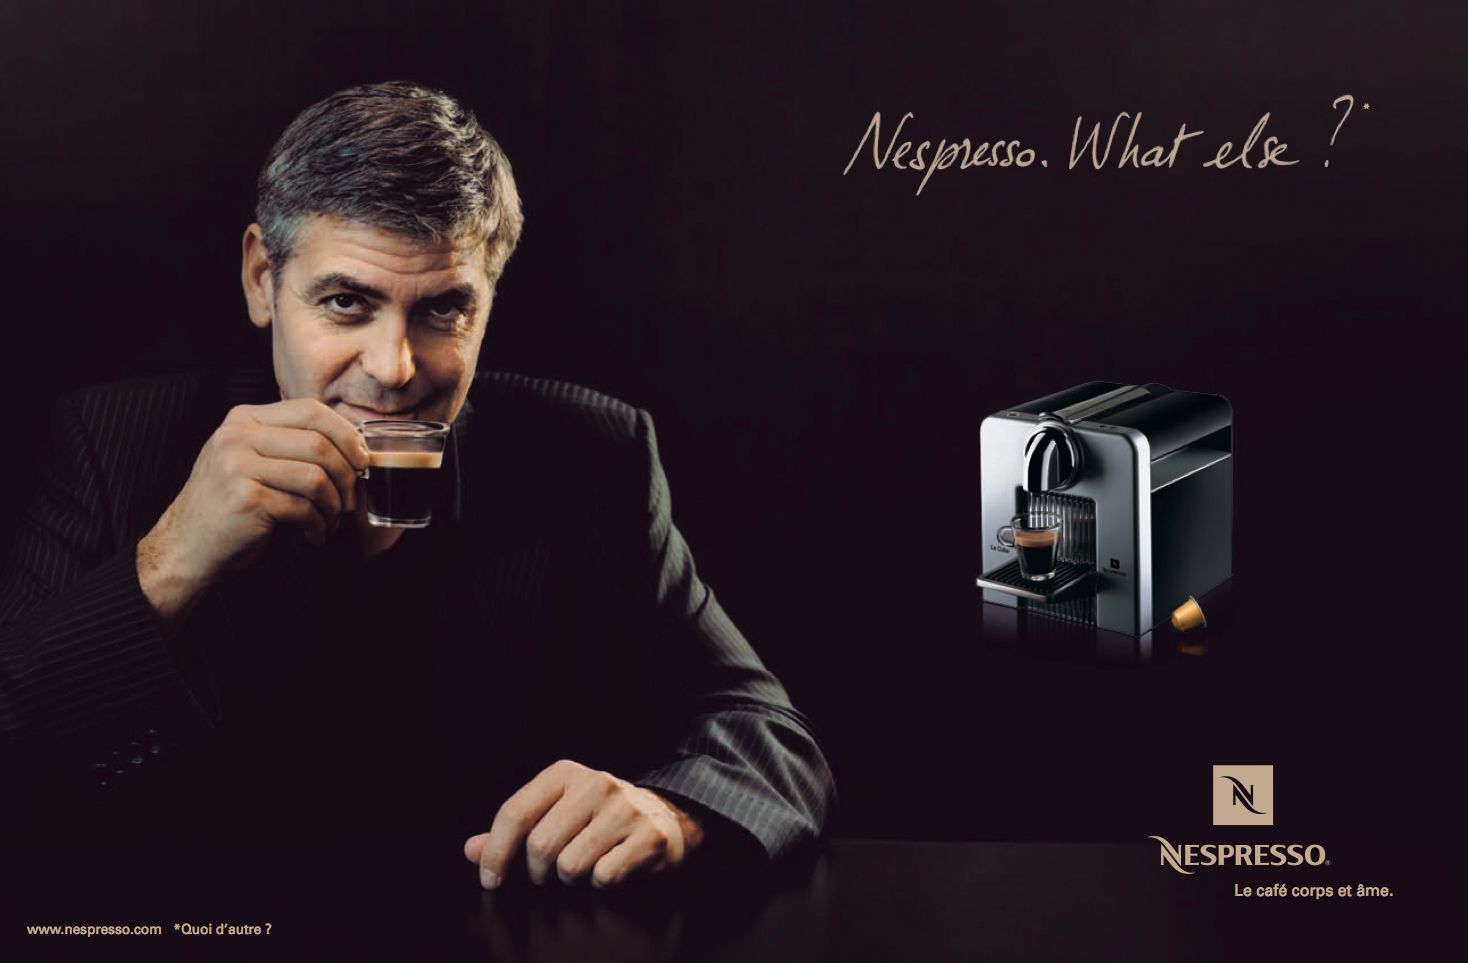 Nespresso nespresso what else font pls forum - Georges clooney what else ...